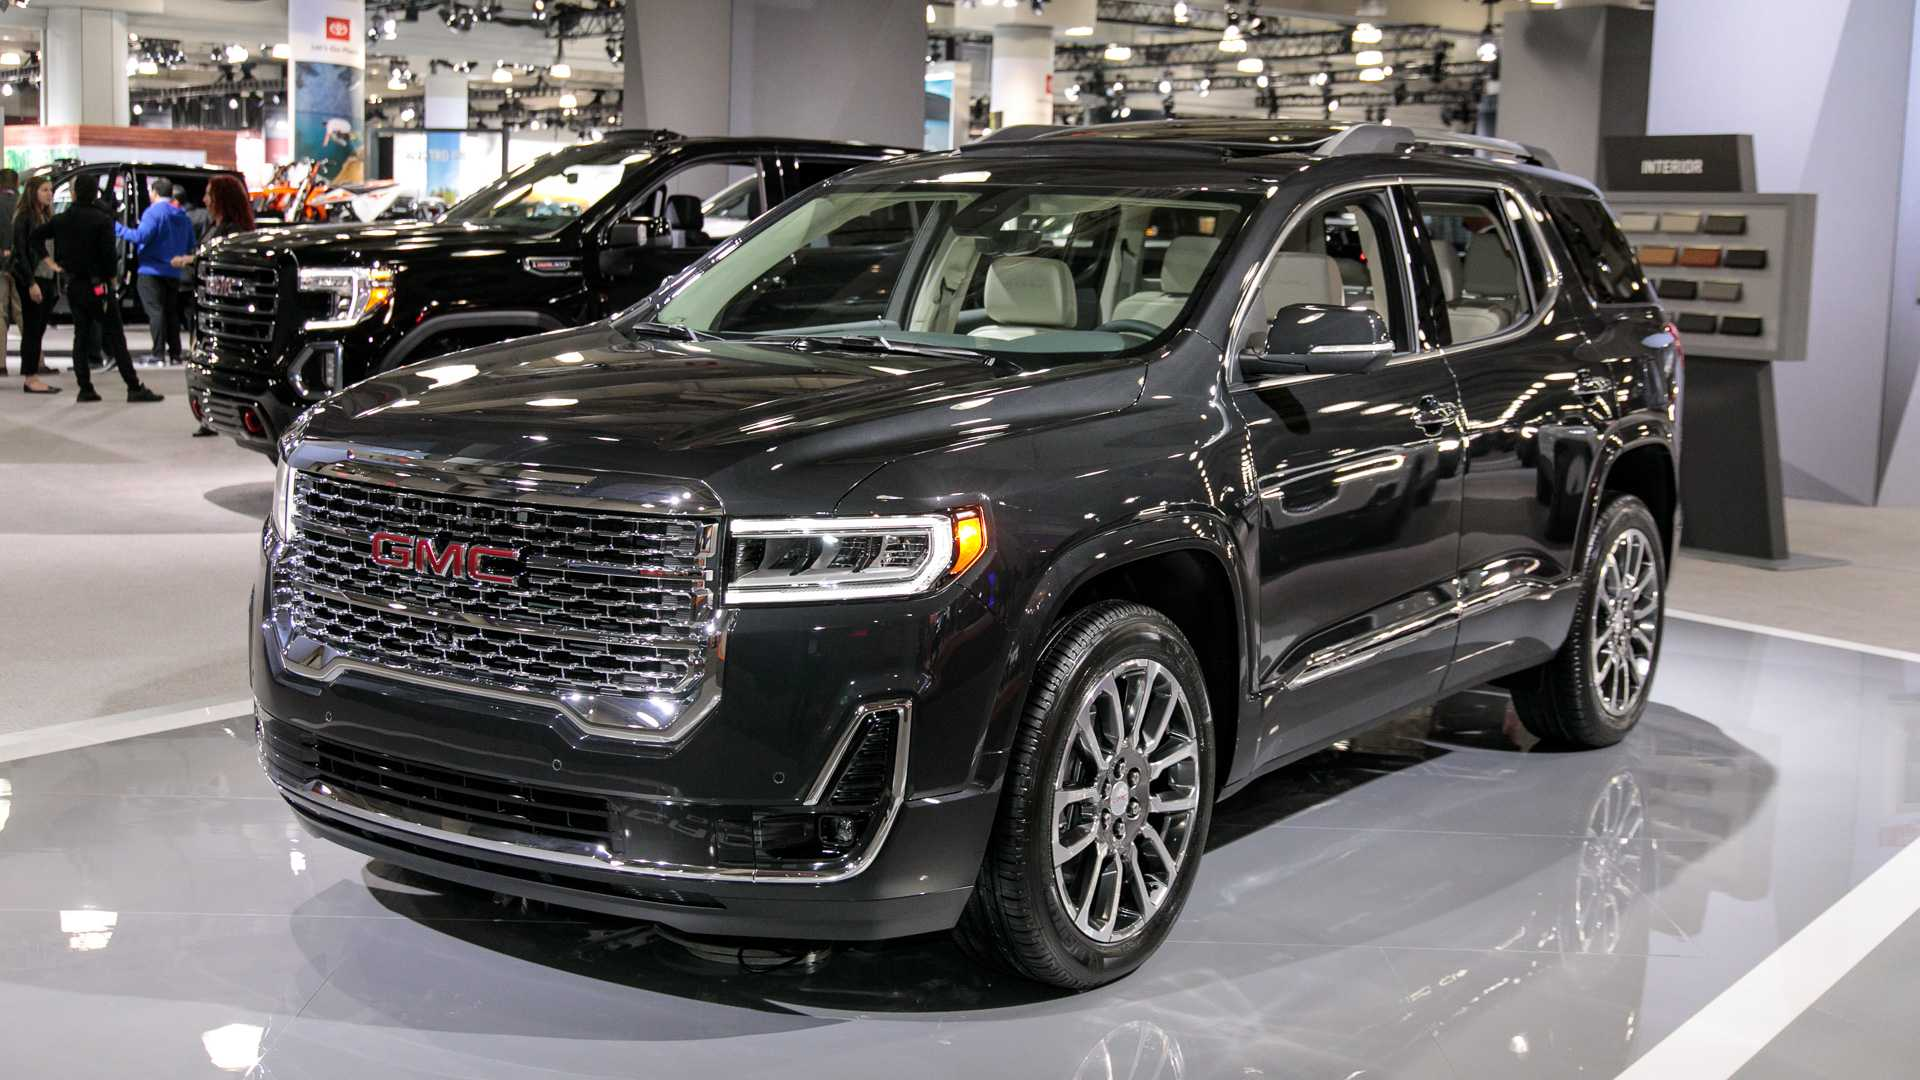 43 New 2020 Gmc Acadia Denali Model